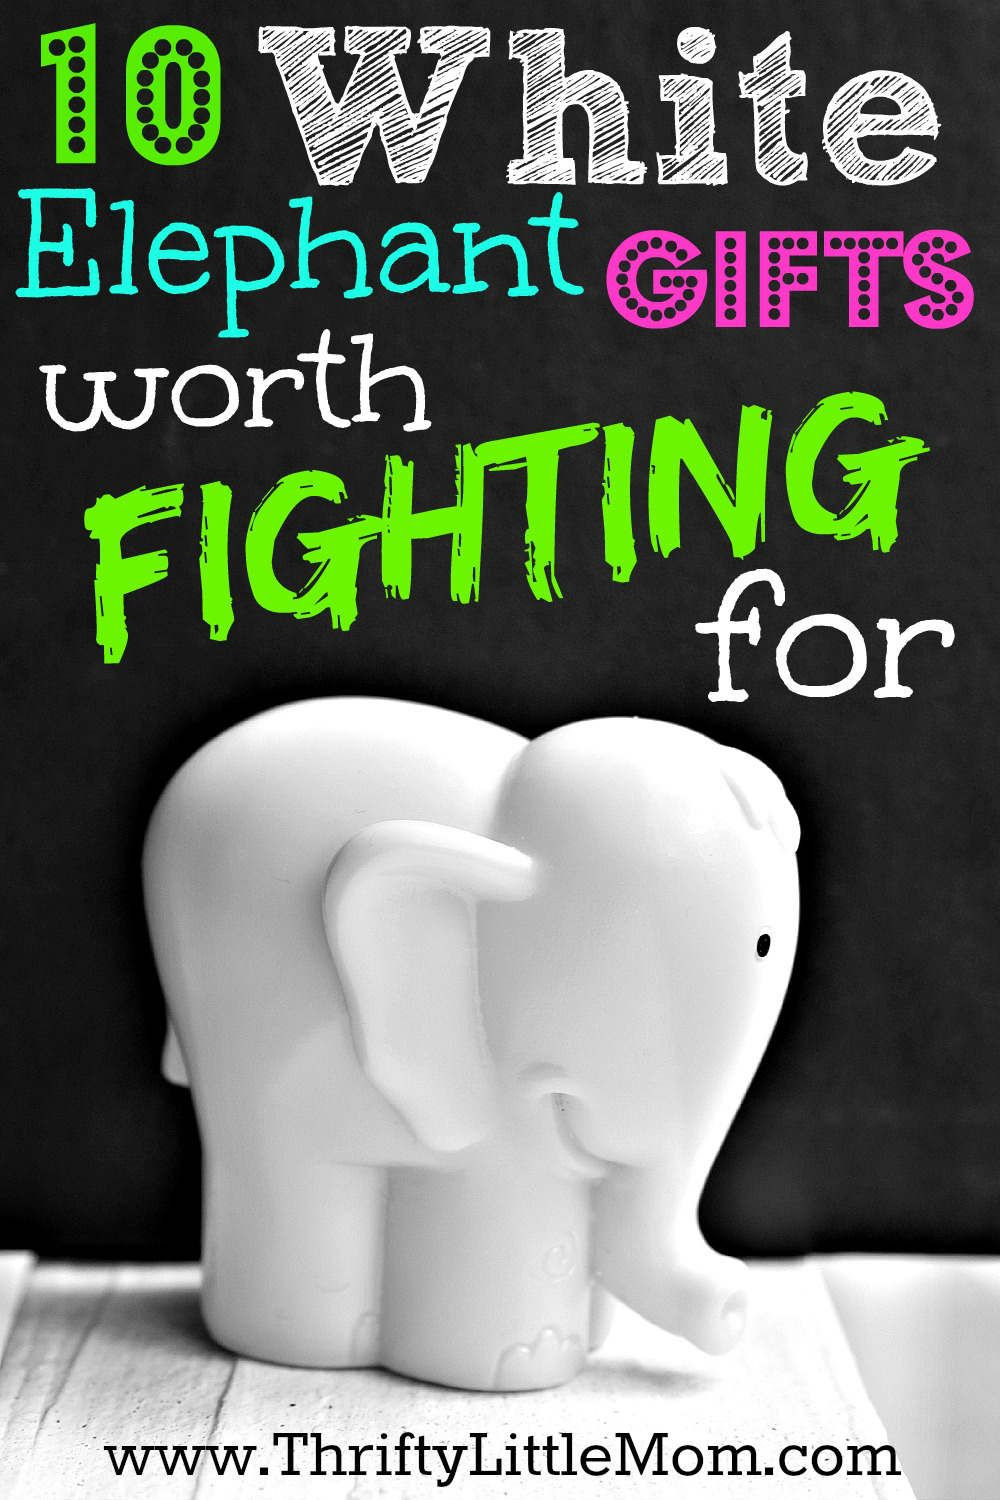 White Elephant Gifts Worth Fighting For | FoOd * FaMiLy *HoMe DIY ...